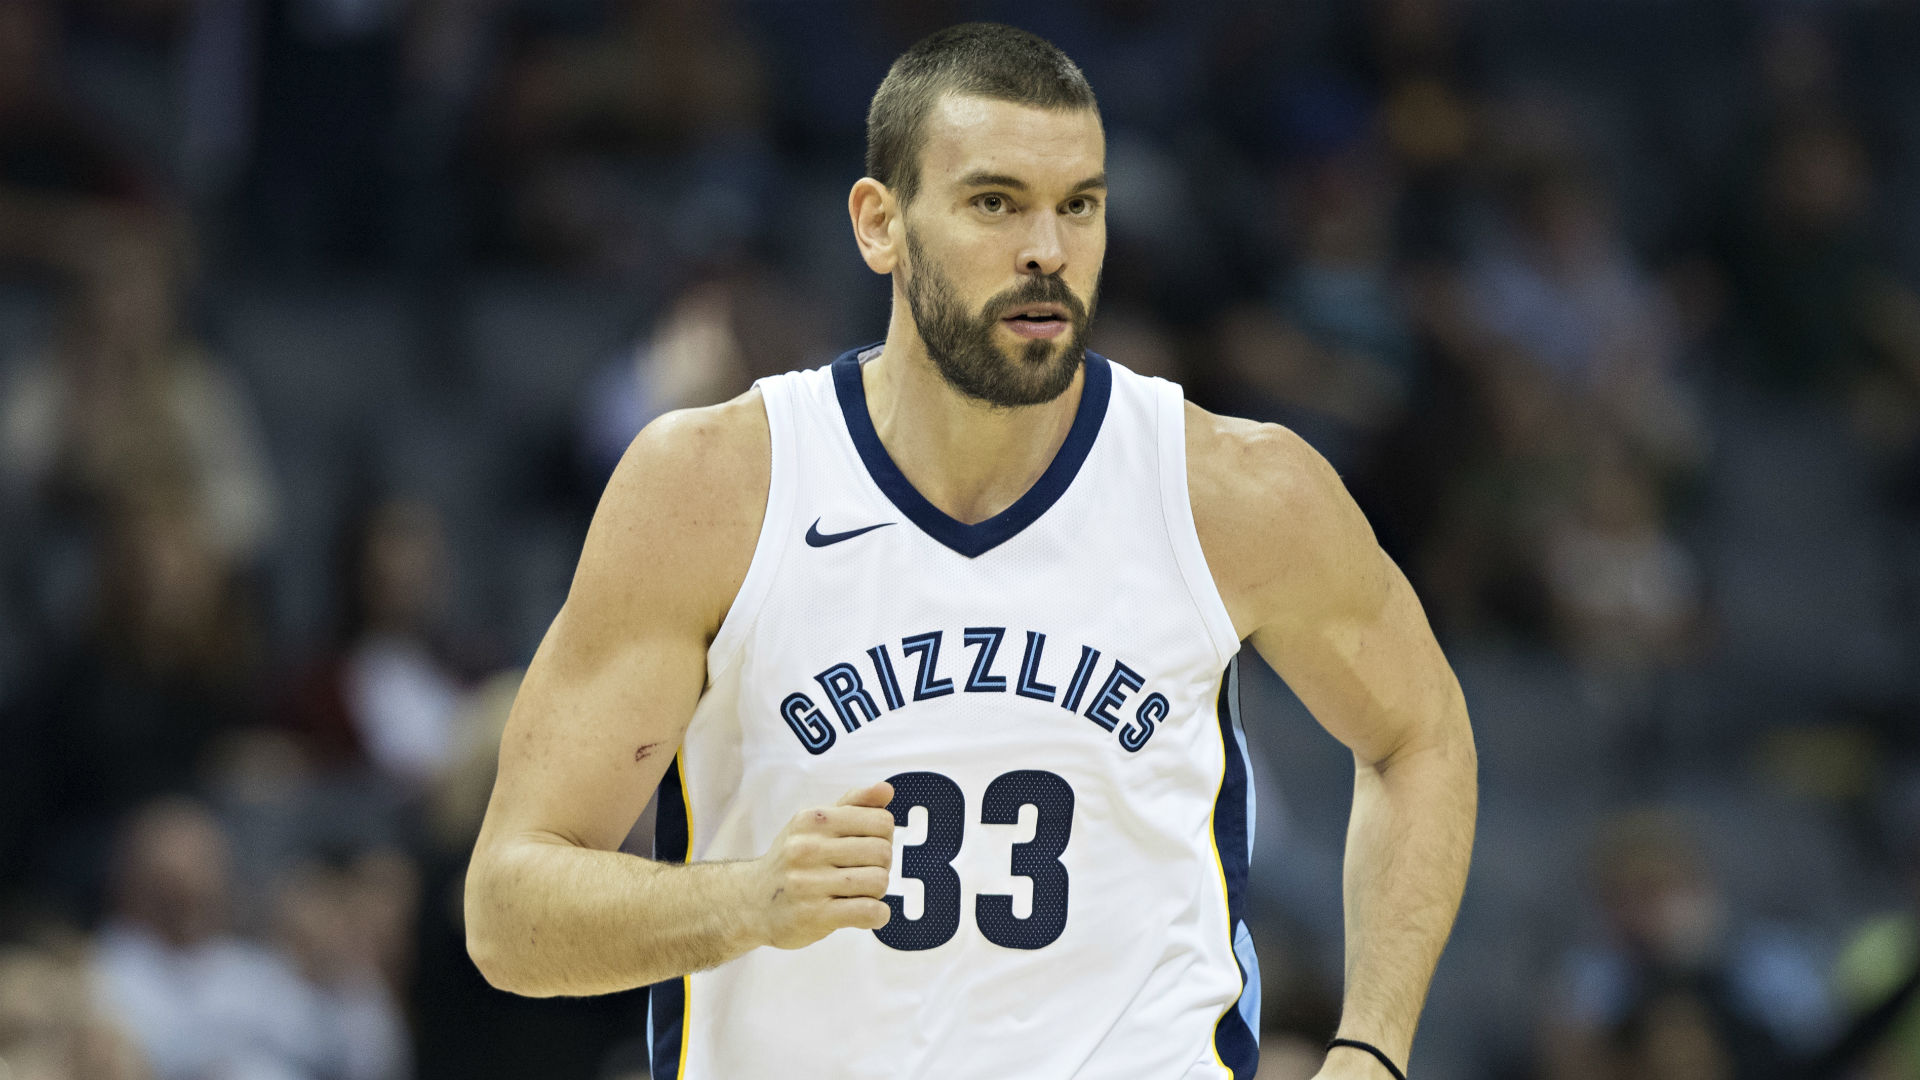 Marc Gasol's F-bomb on live TV costs him $15,000, was probably worth it